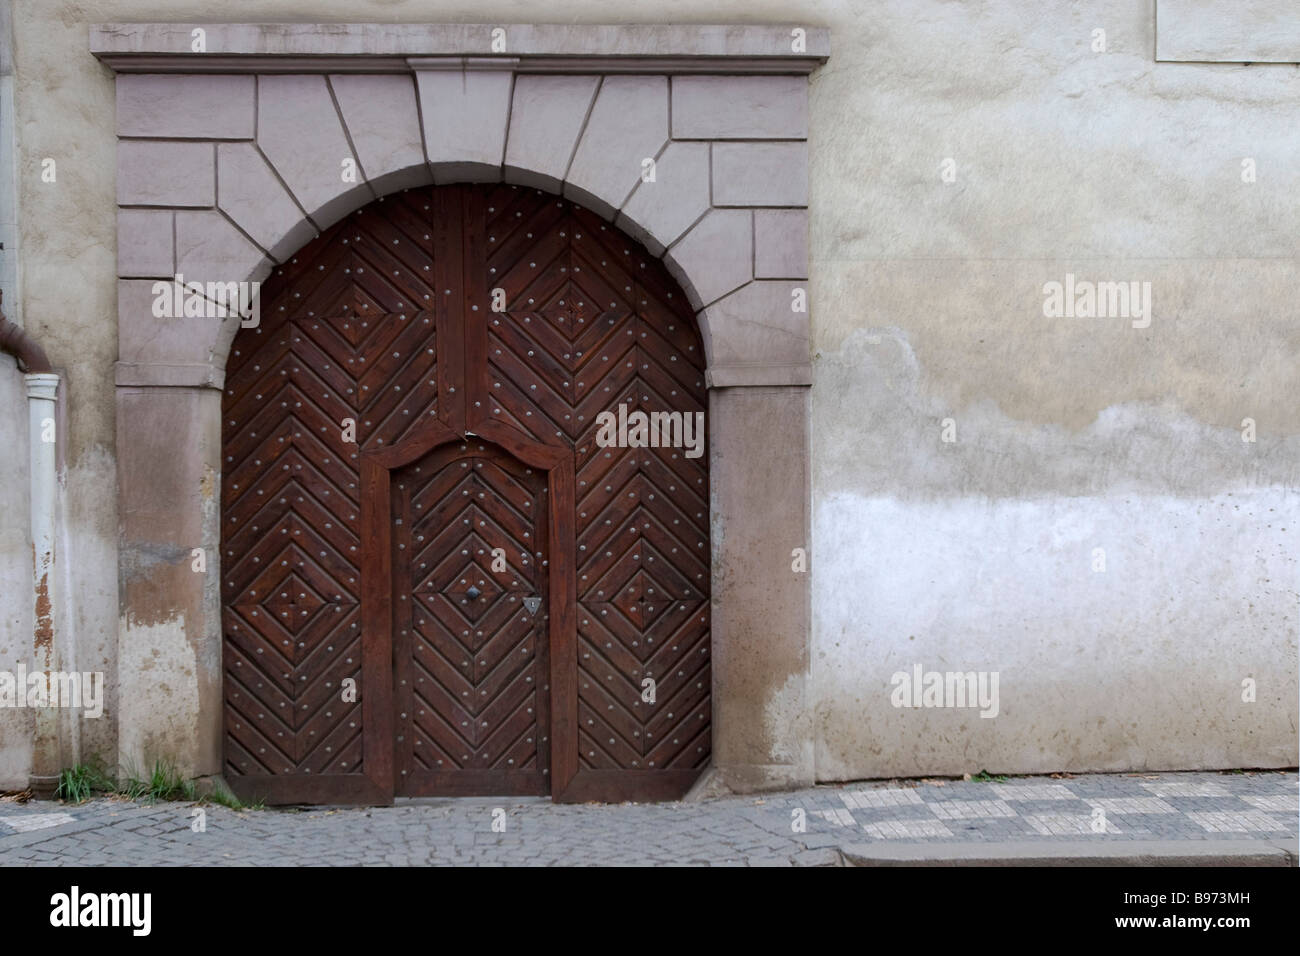 Big arched medieval house door with wicket gate inside it in Prague Czech Republic. & Big arched medieval house door with wicket gate inside it in Prague ...